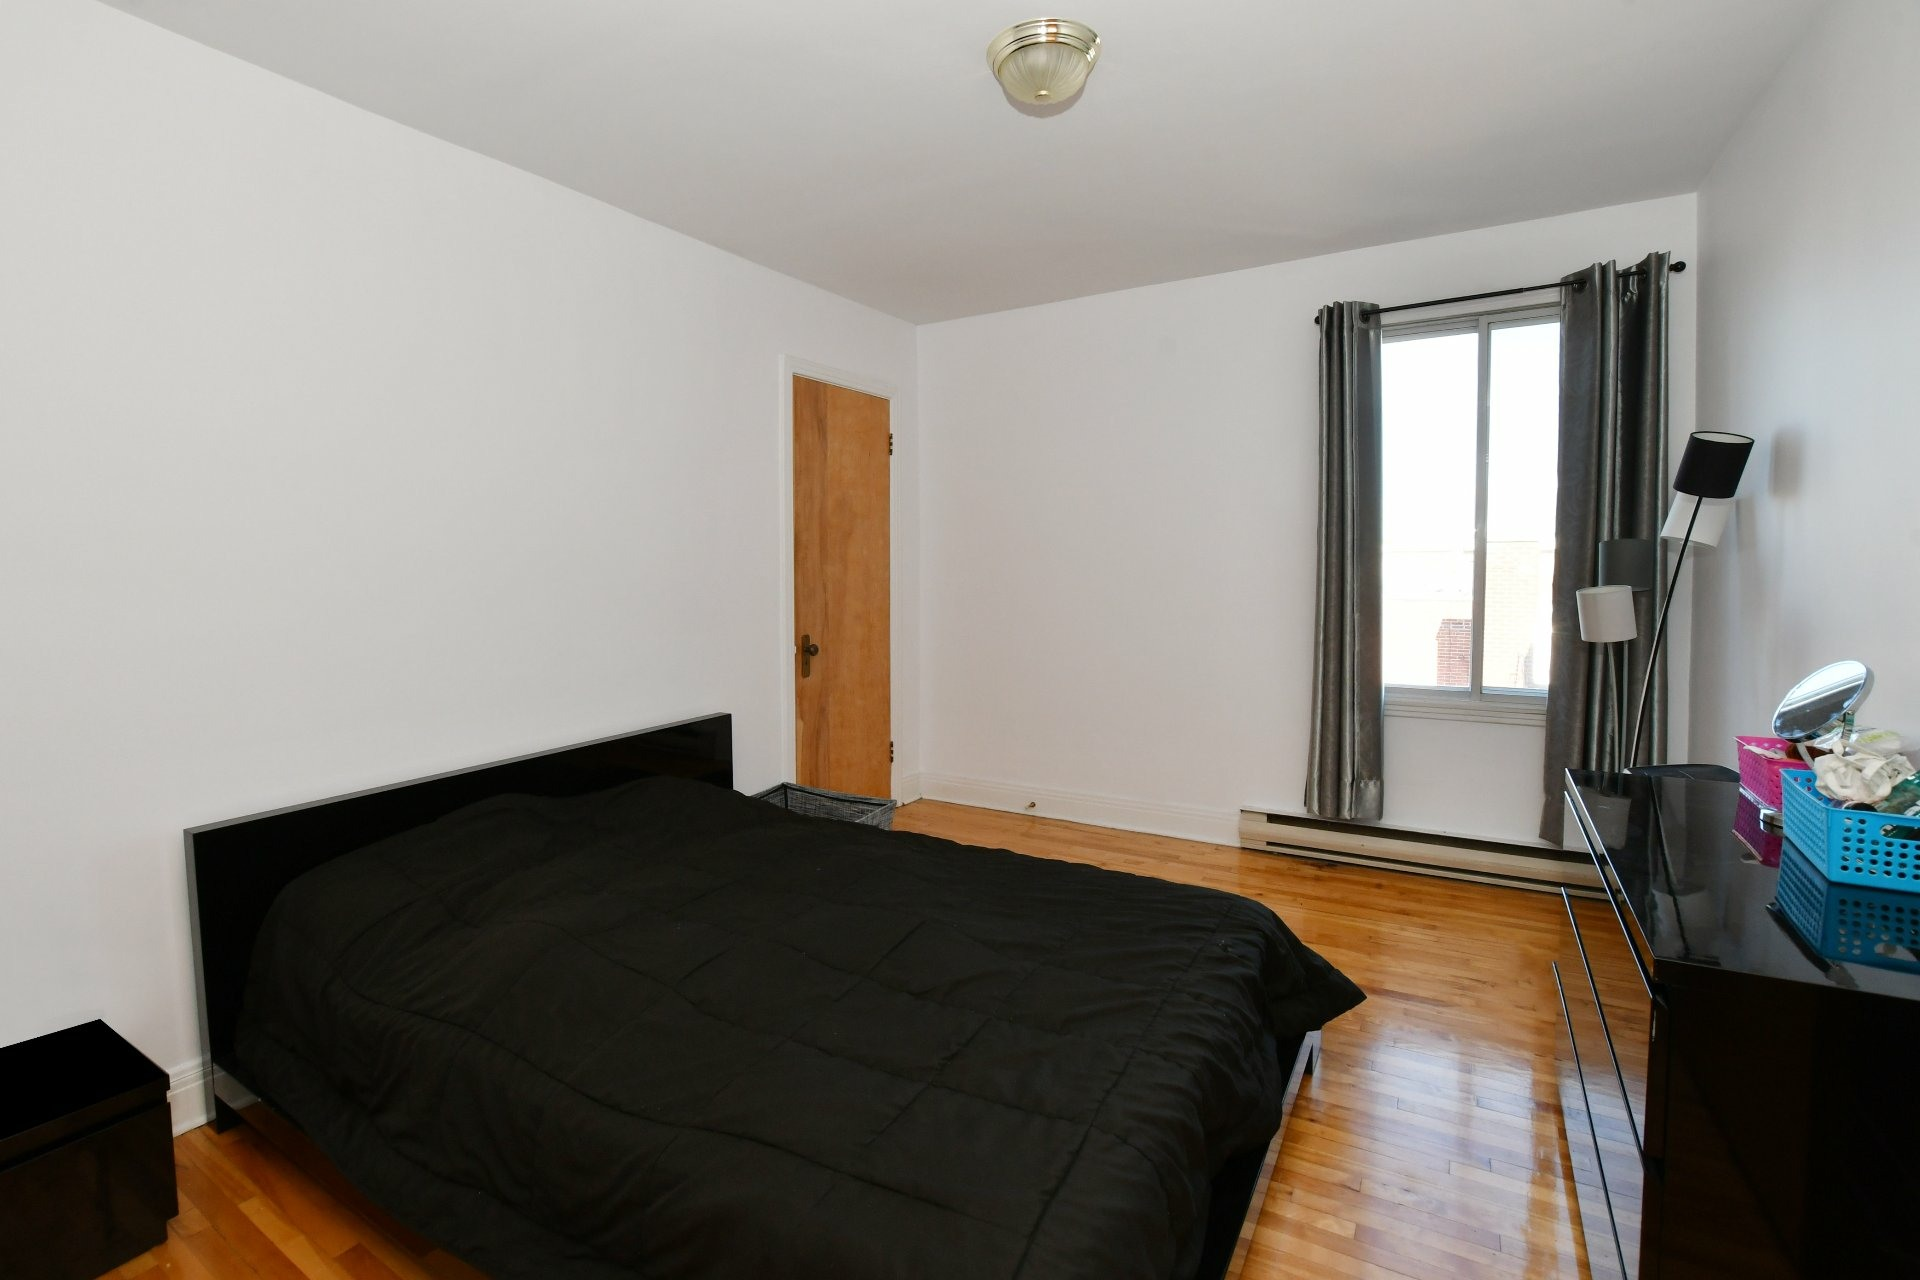 image 5 - Income property For sale Villeray/Saint-Michel/Parc-Extension Montréal  - 4 rooms